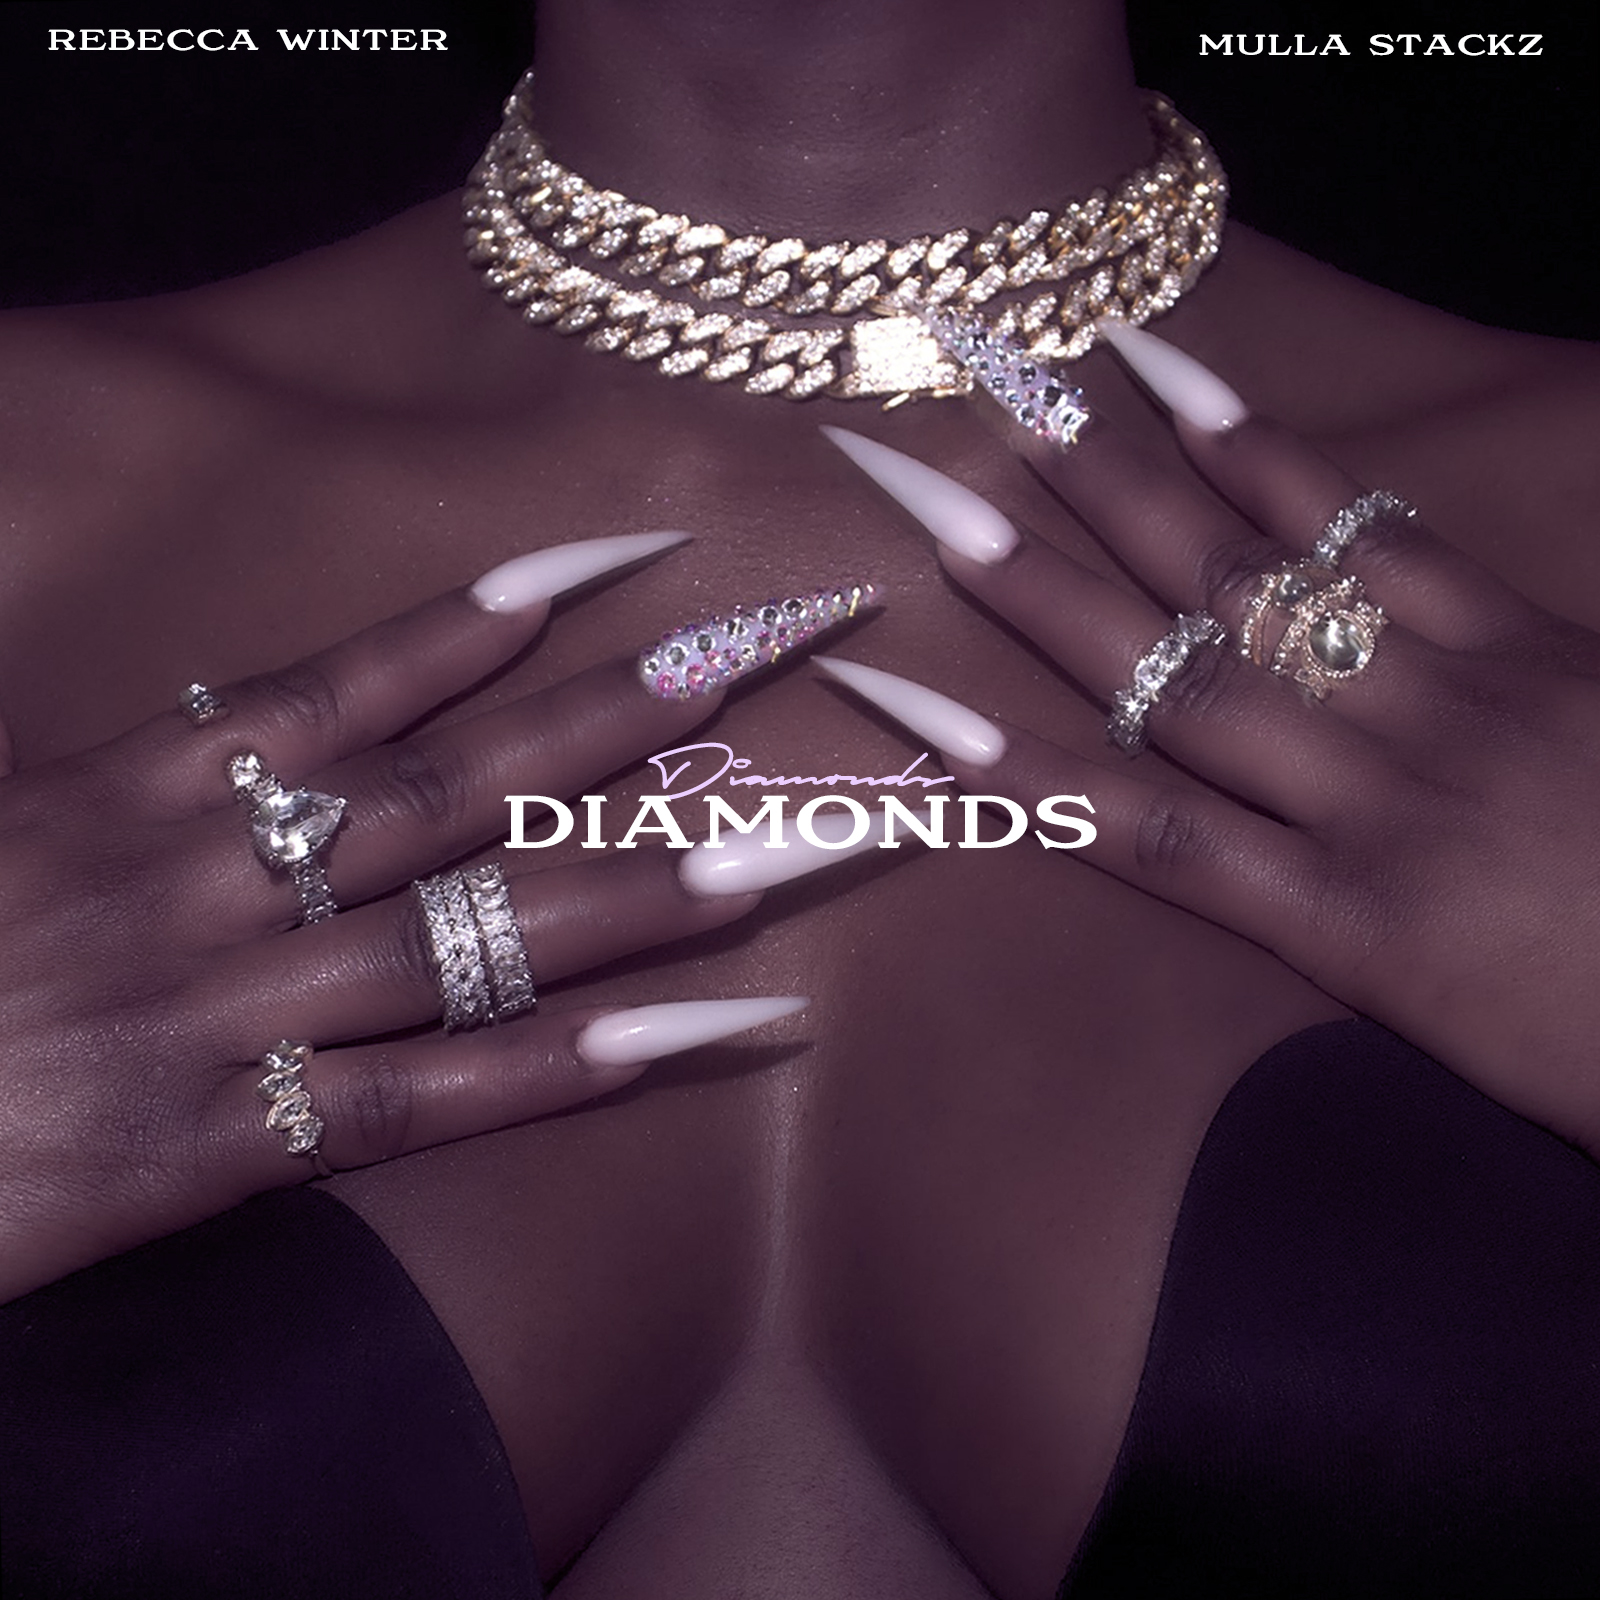 Rebecca Winter Diamonds